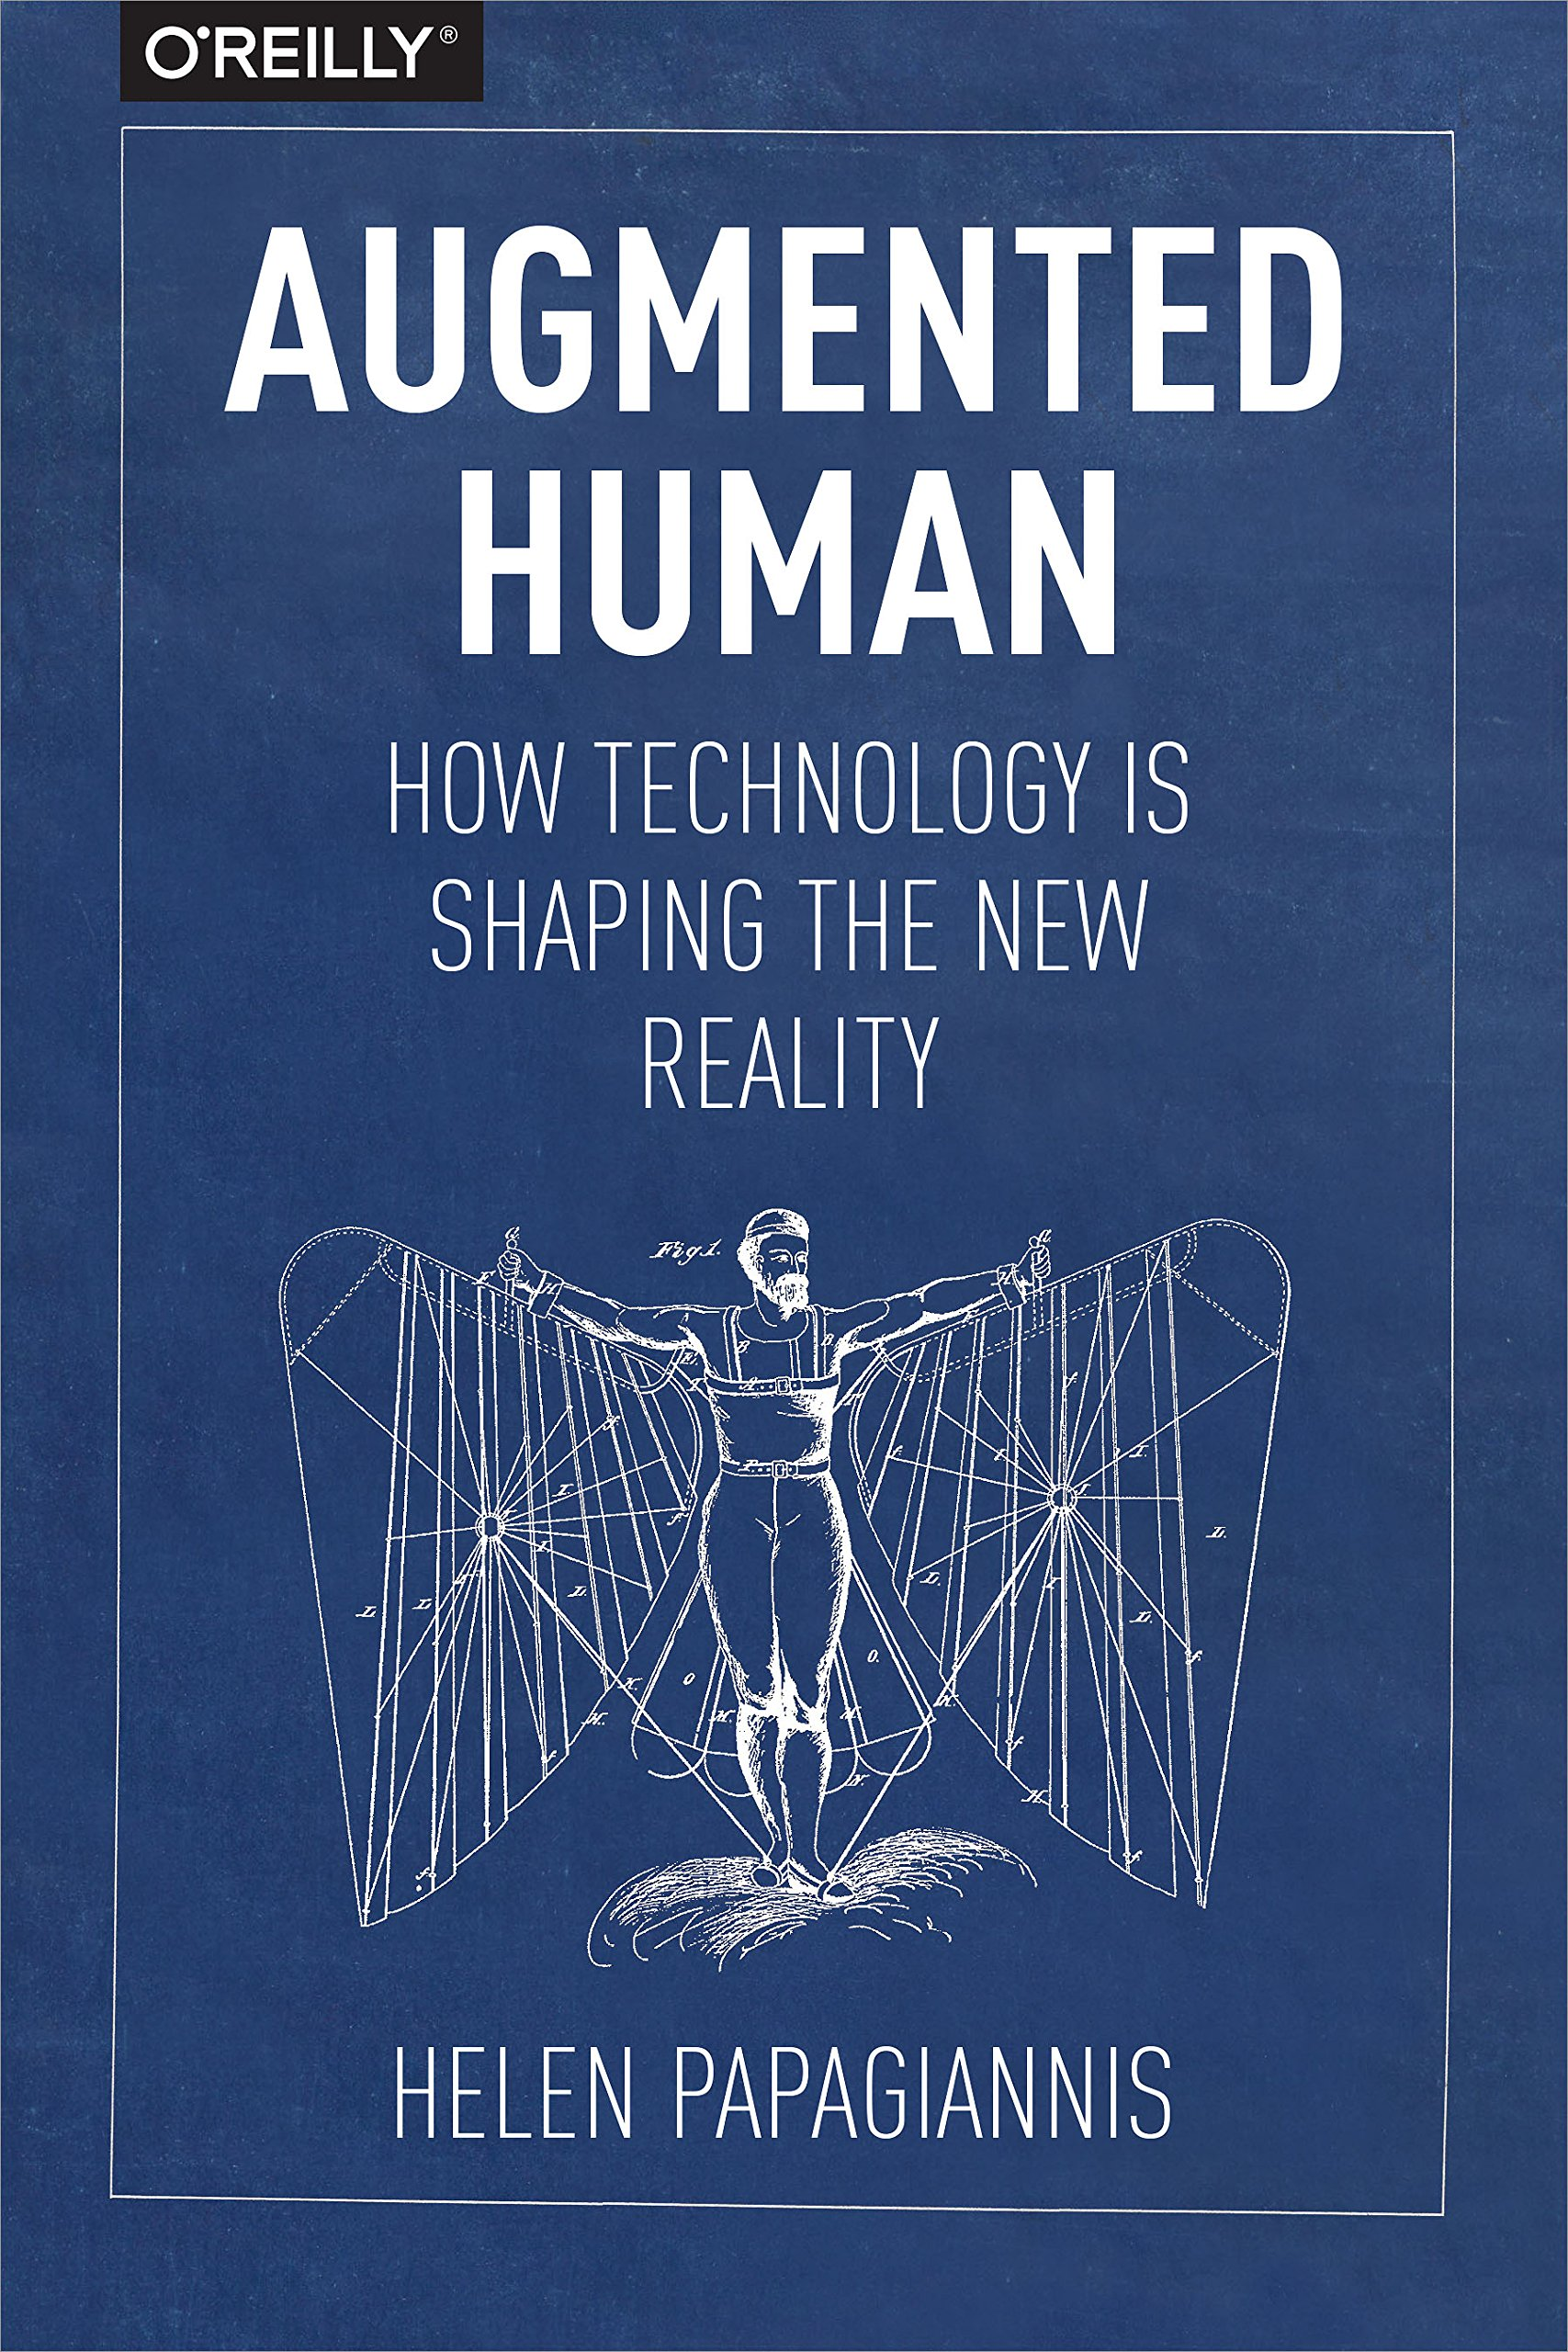 Augmented Human: How Technology Is Shaping the New